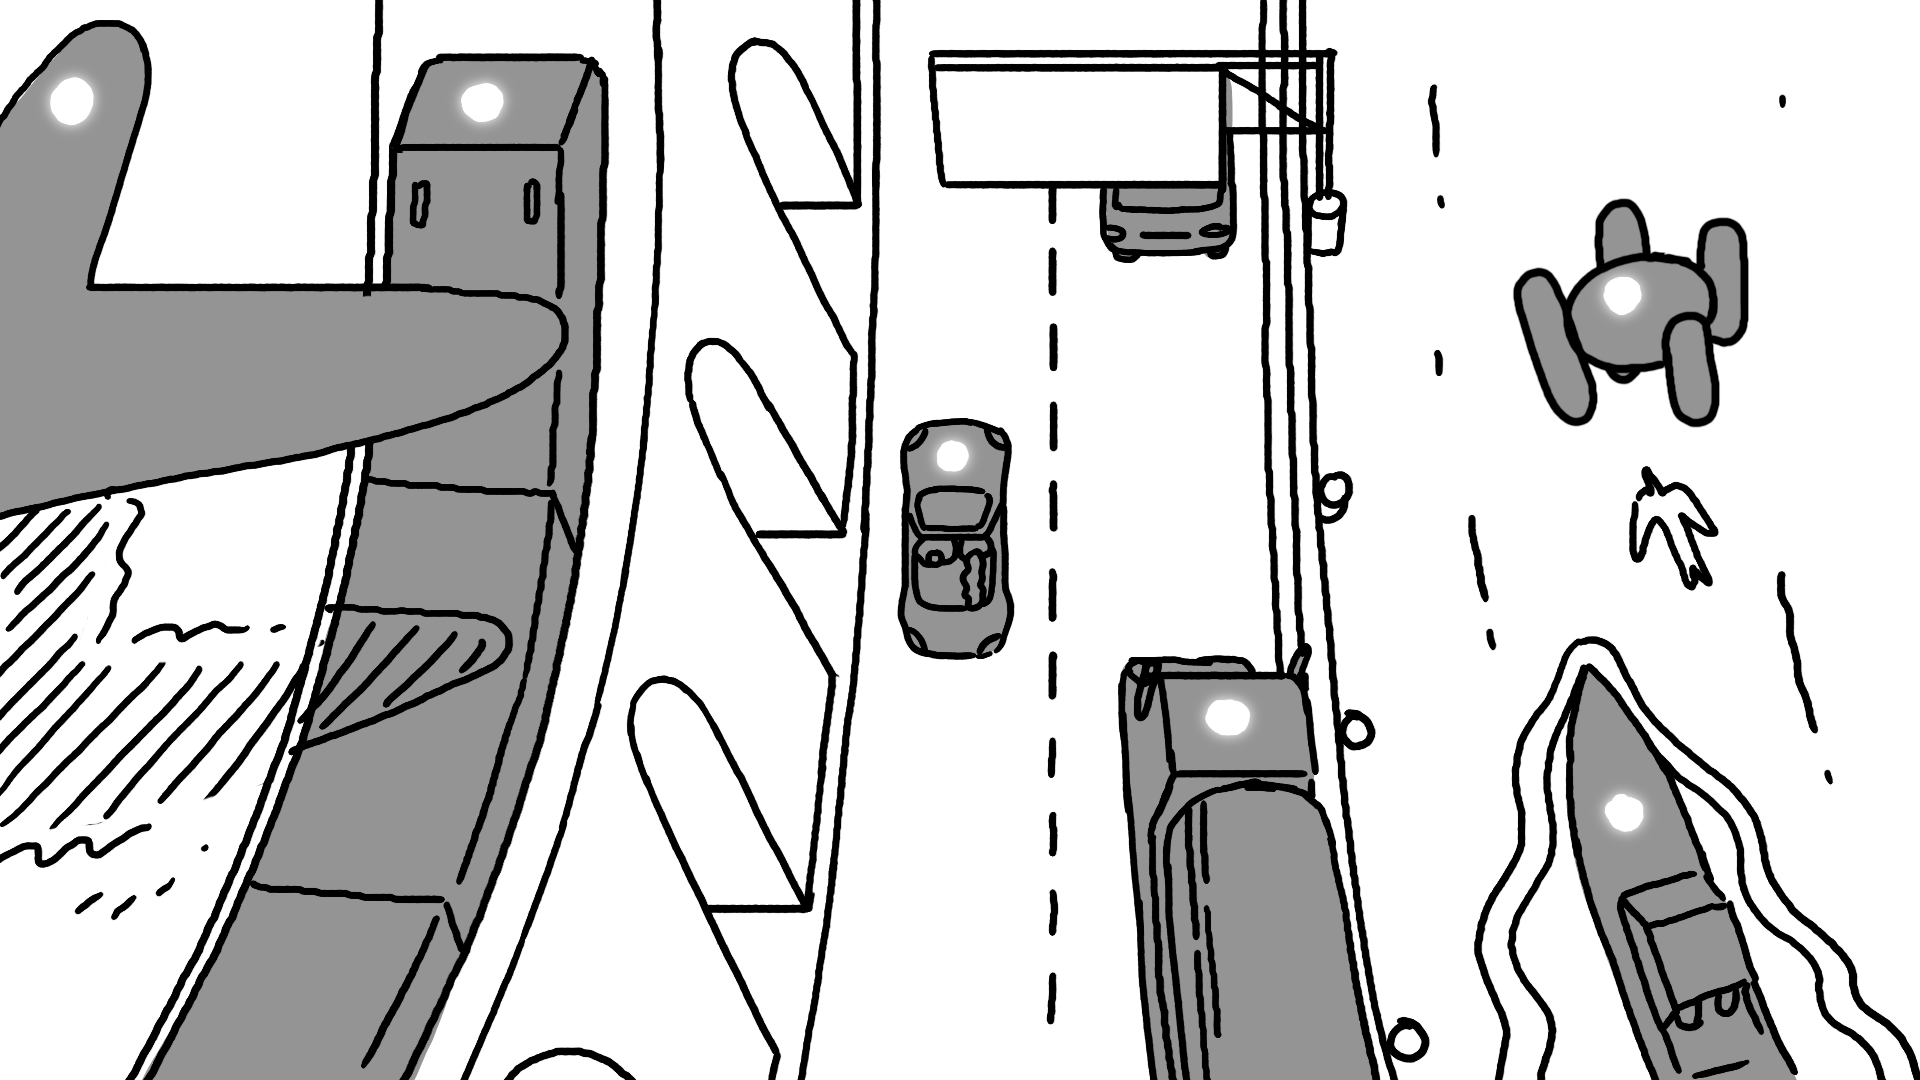 QC_Vehicles_Storyboard_v02.png